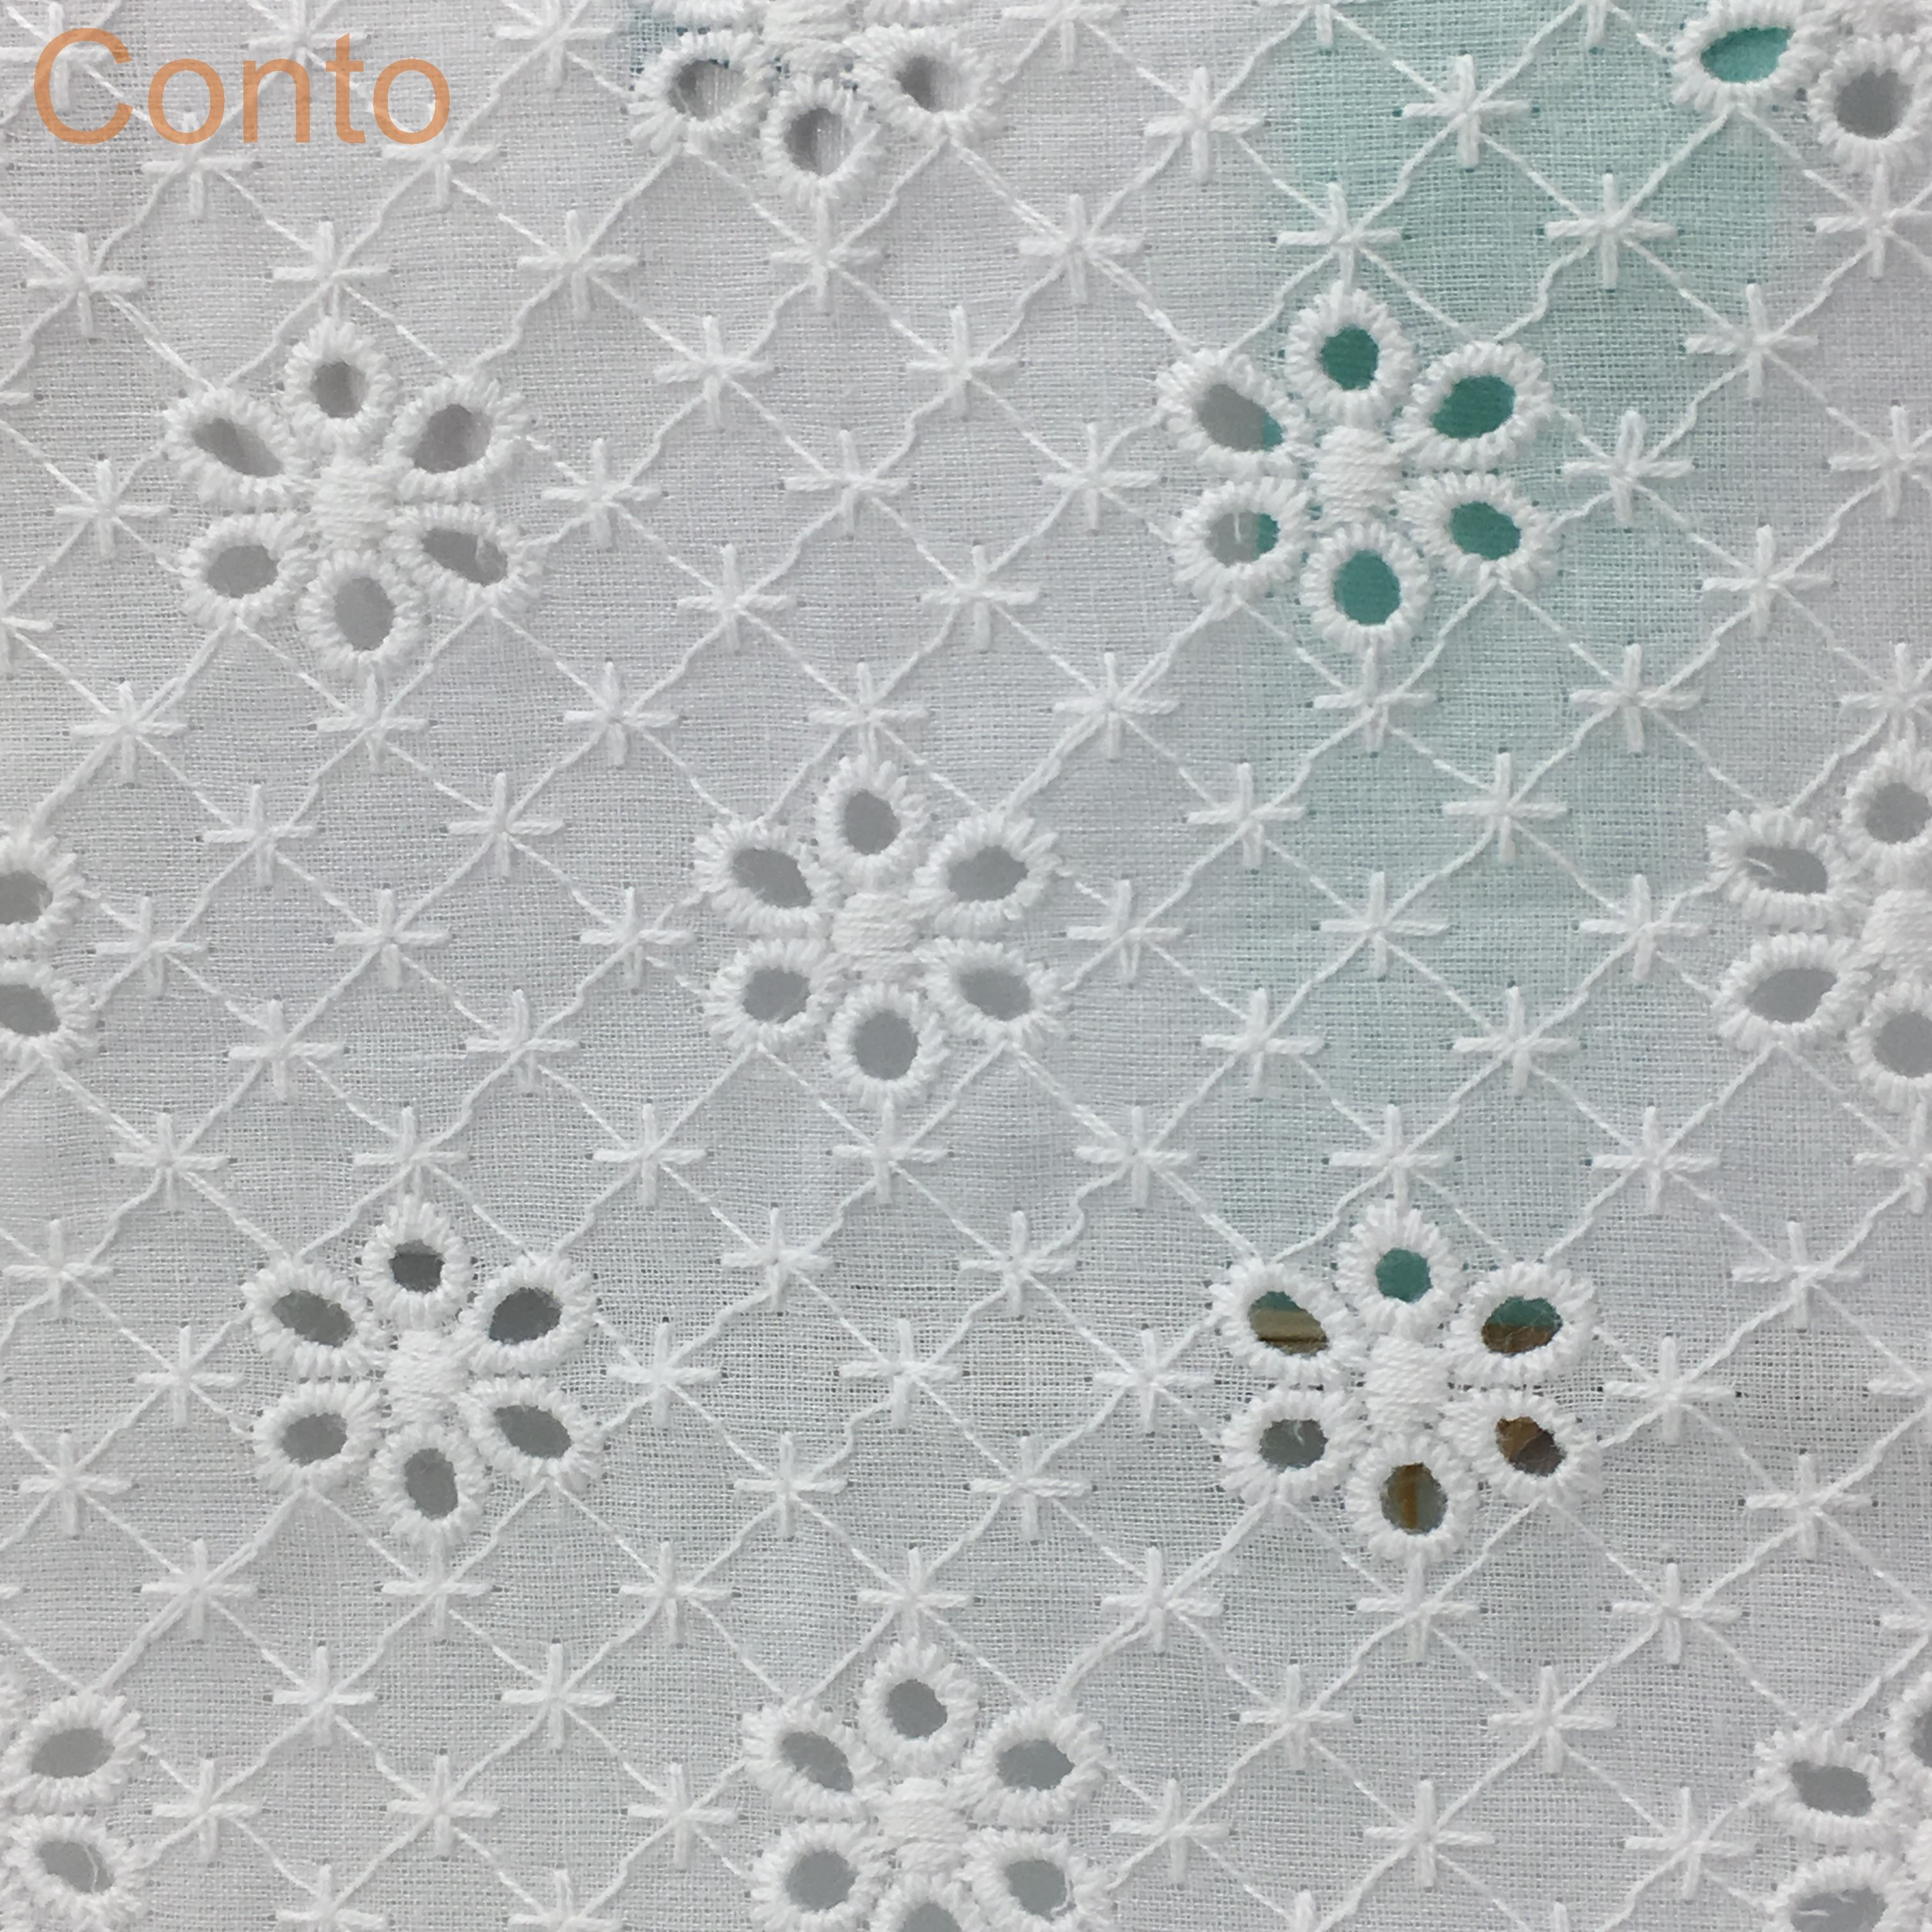 COF0572 Six hole with dot Voile embroidery cotton crochet lace fabric